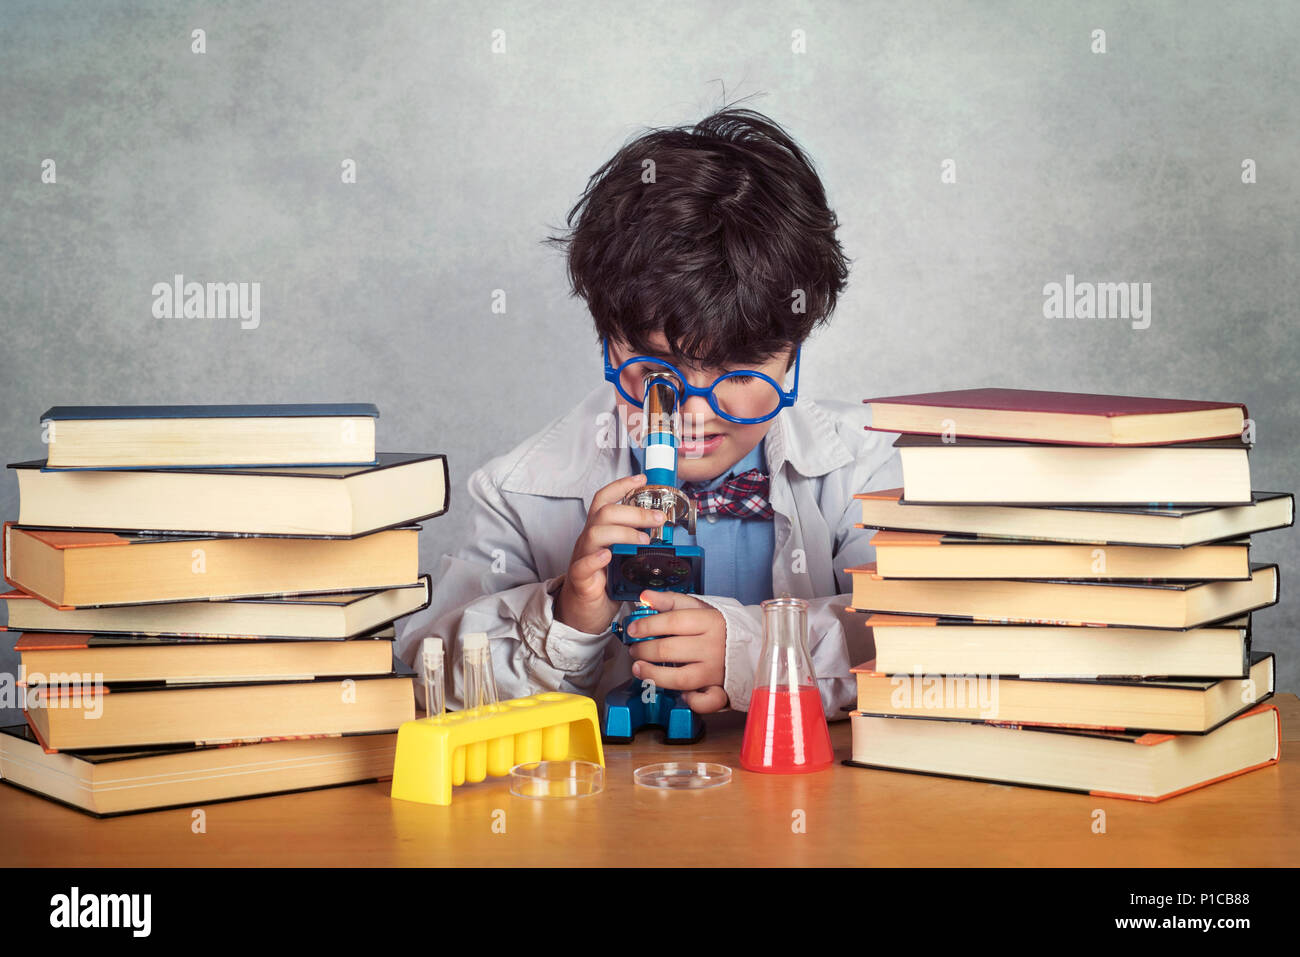 boy is making science experiments on gray background - Stock Image